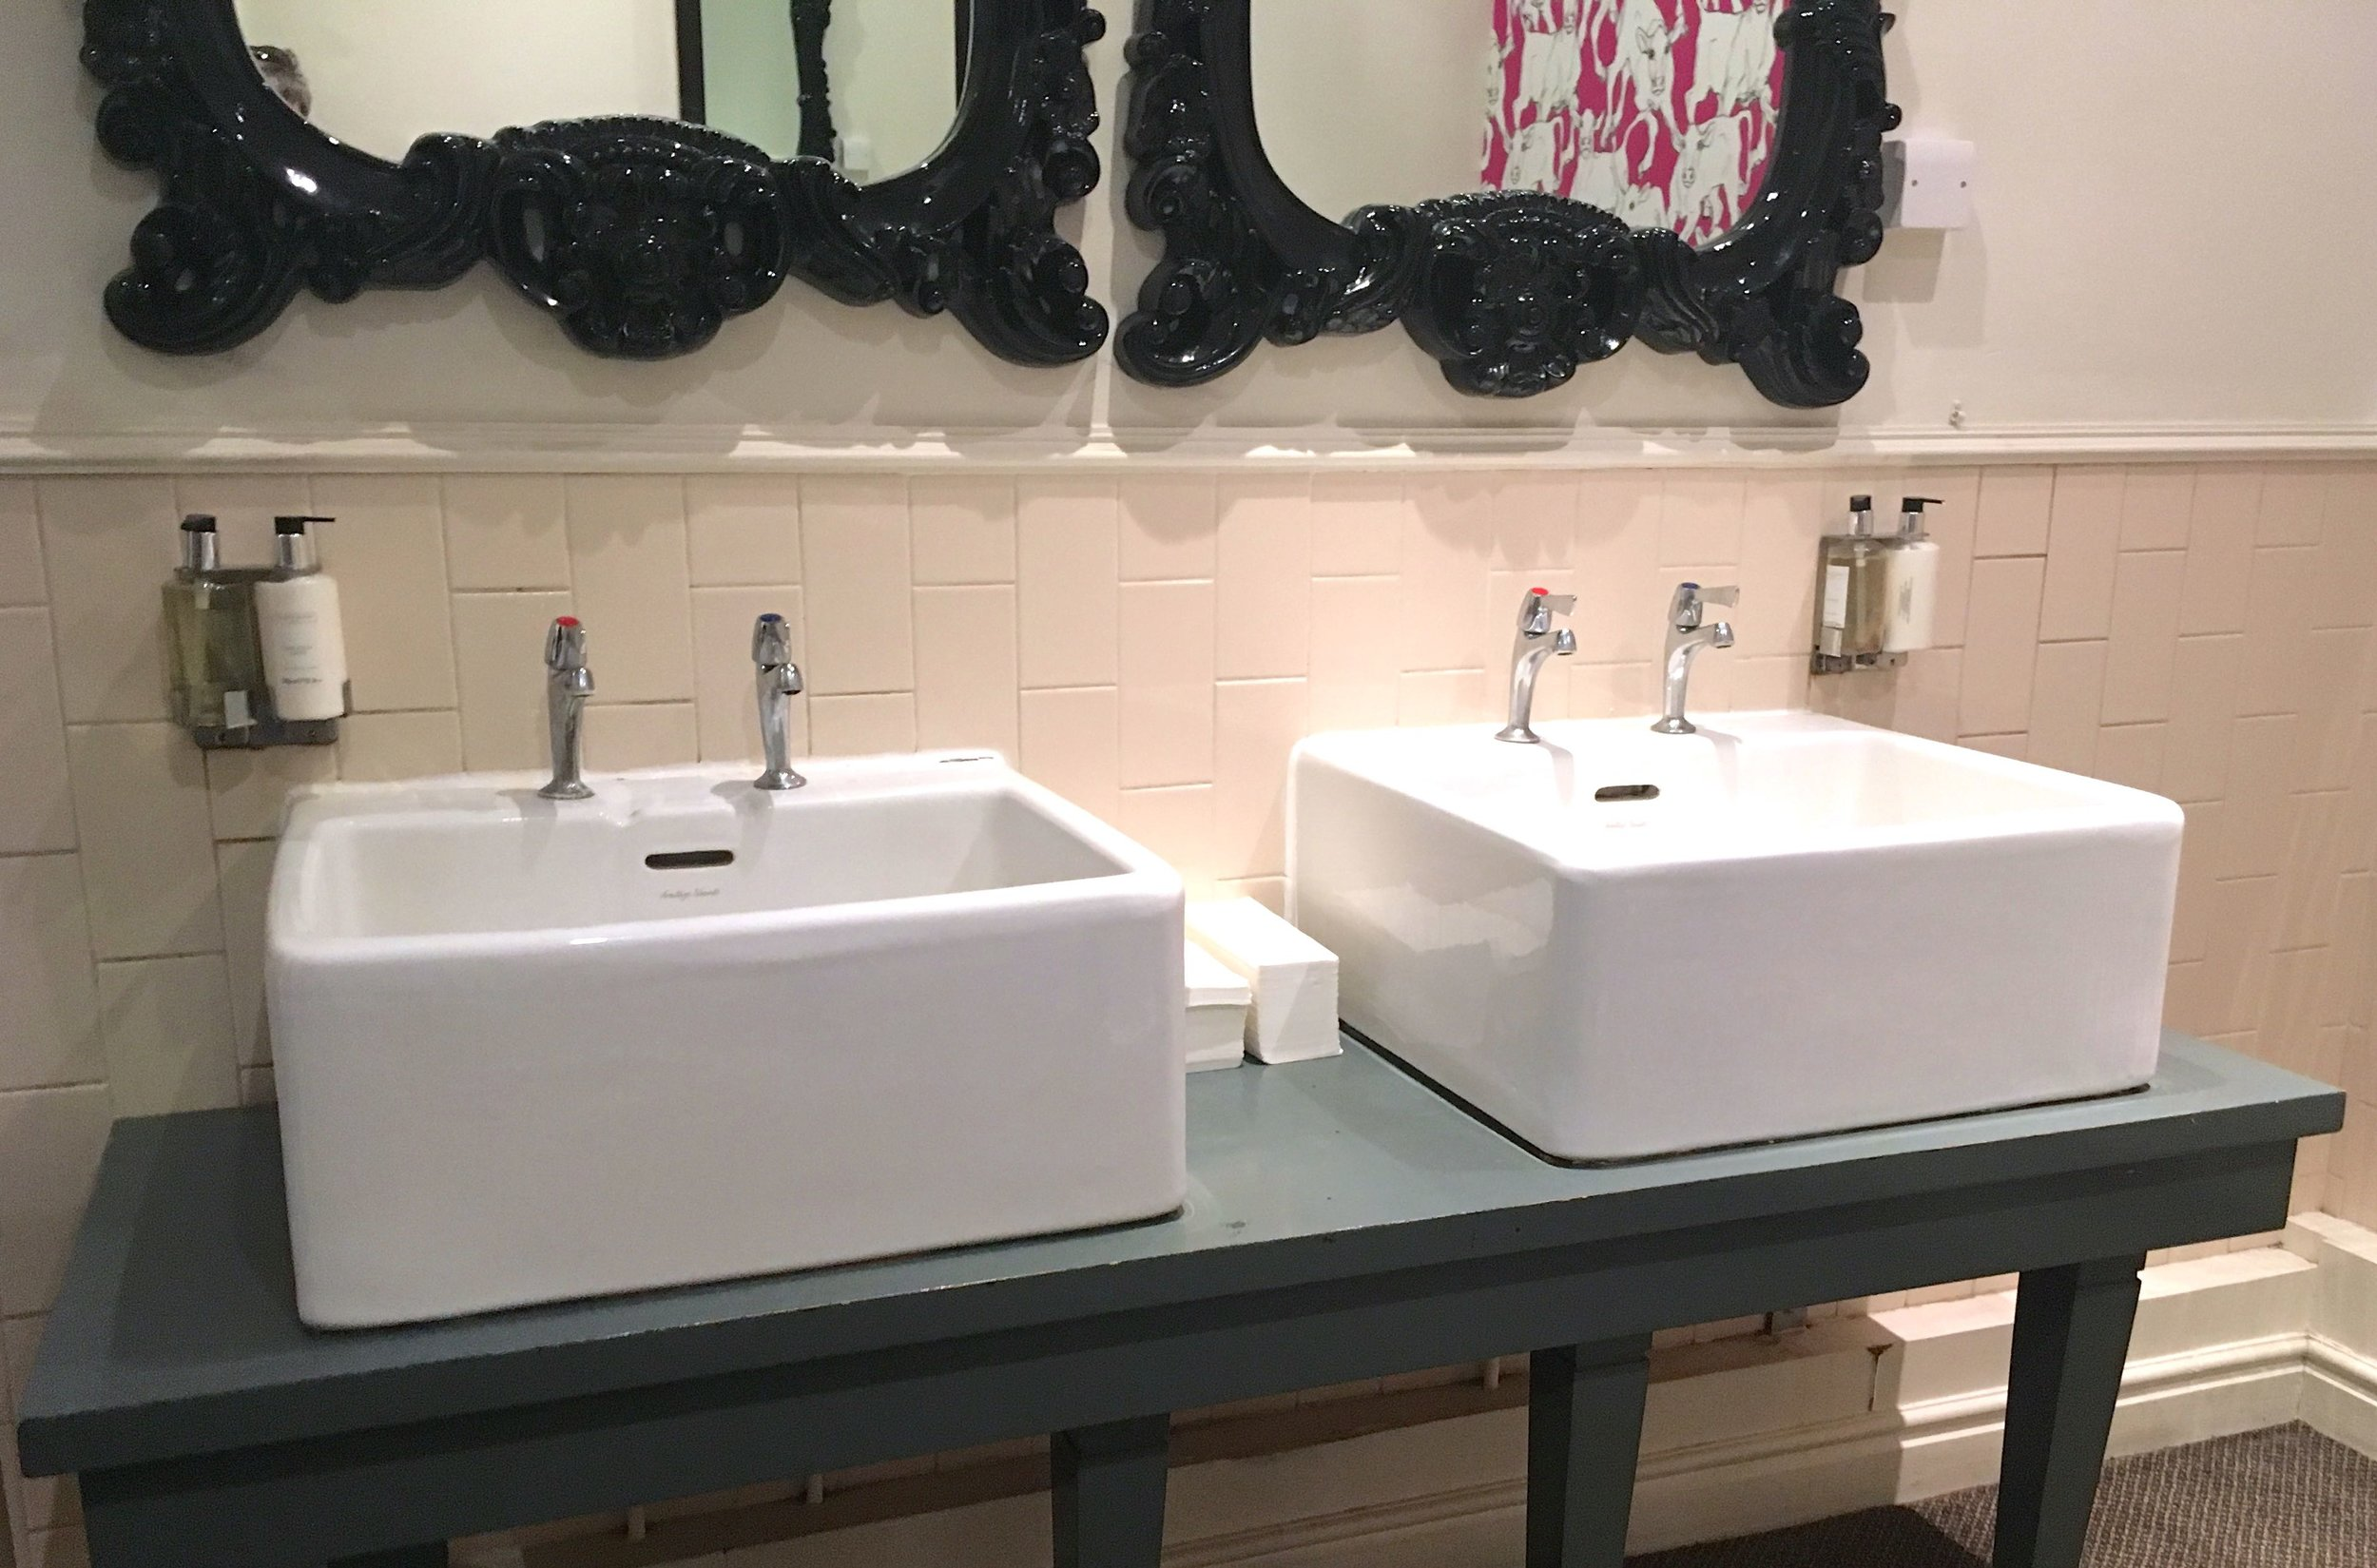 And what better than to put underneath the large mirrors?  Large sinks of course!